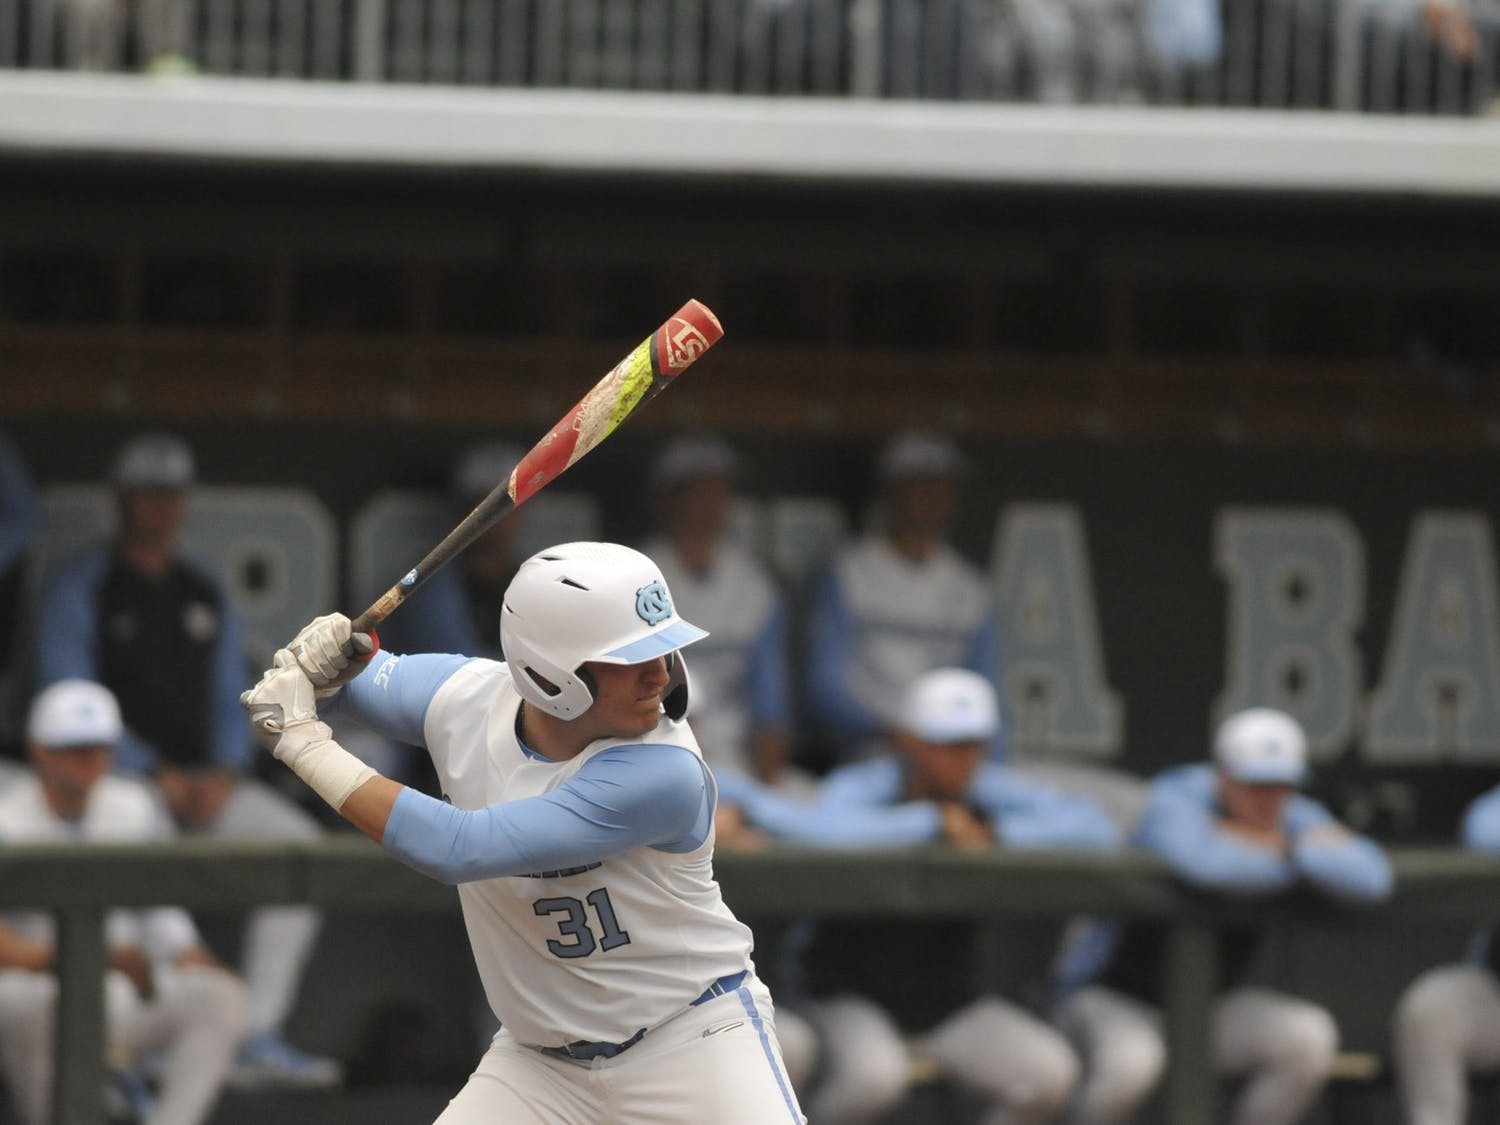 UNC junior pitcher Joey Lancellotti (31) prepares to bat at the Boshamer Stadium on Sunday, Feb. 16, 2020. UNC won against Middle Tennessee with a score of 5-4.